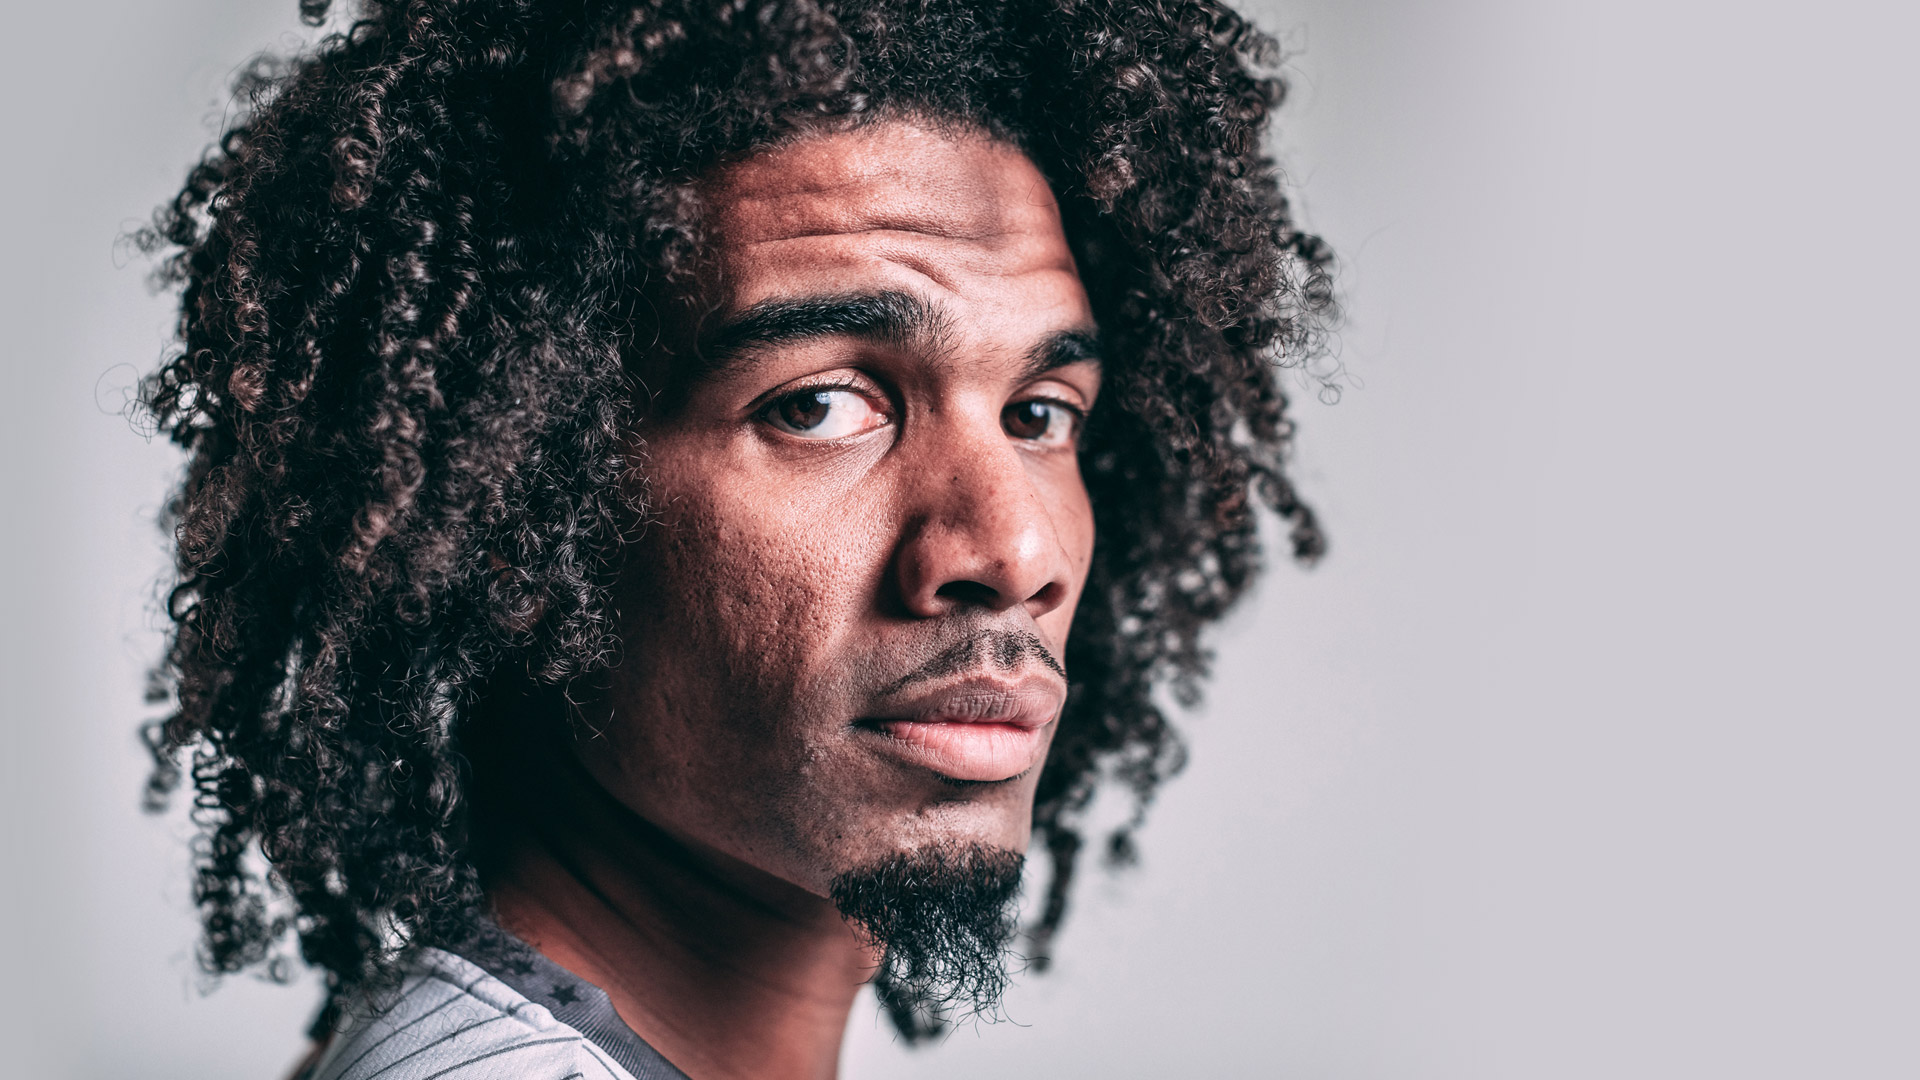 Conner Washington to represent GB in Eurobasket Qualifiers